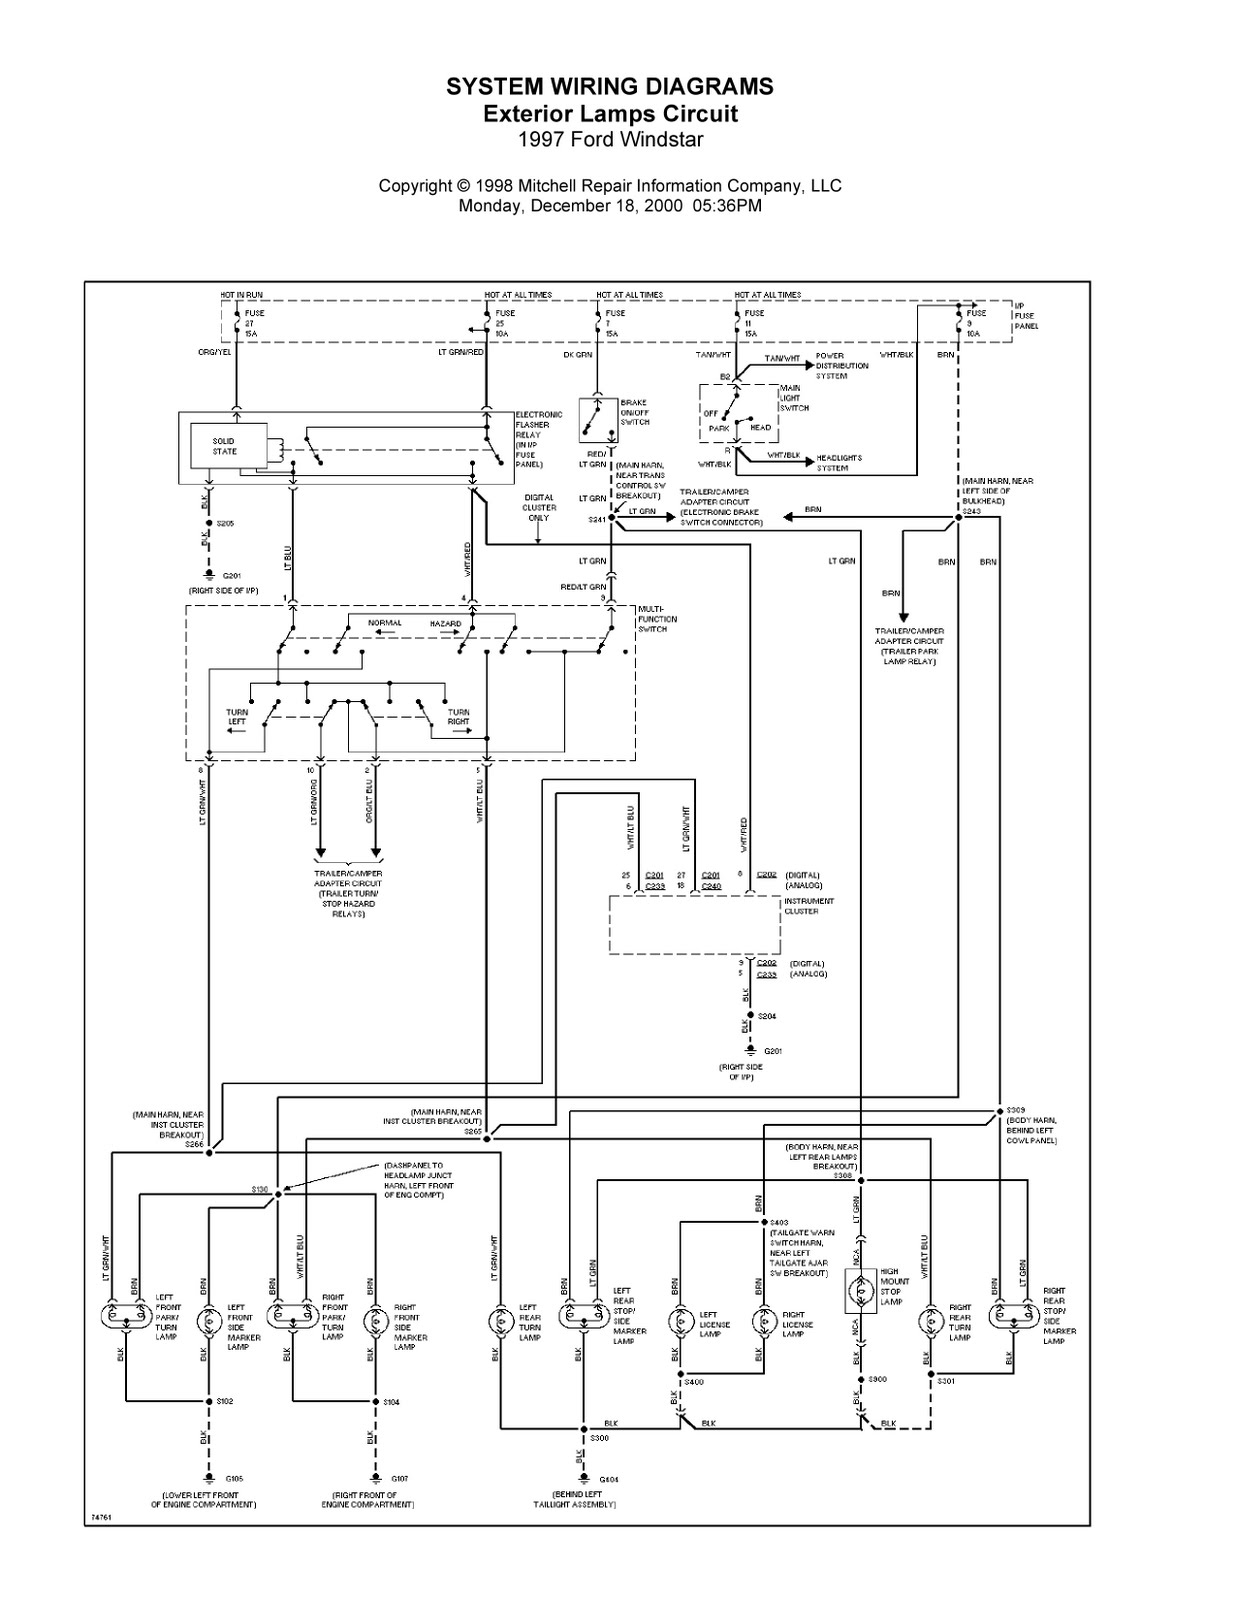 Ford Windstar Electrical Diagram Books Of Wiring In 1997 Complete System Diagrams 2000 2001